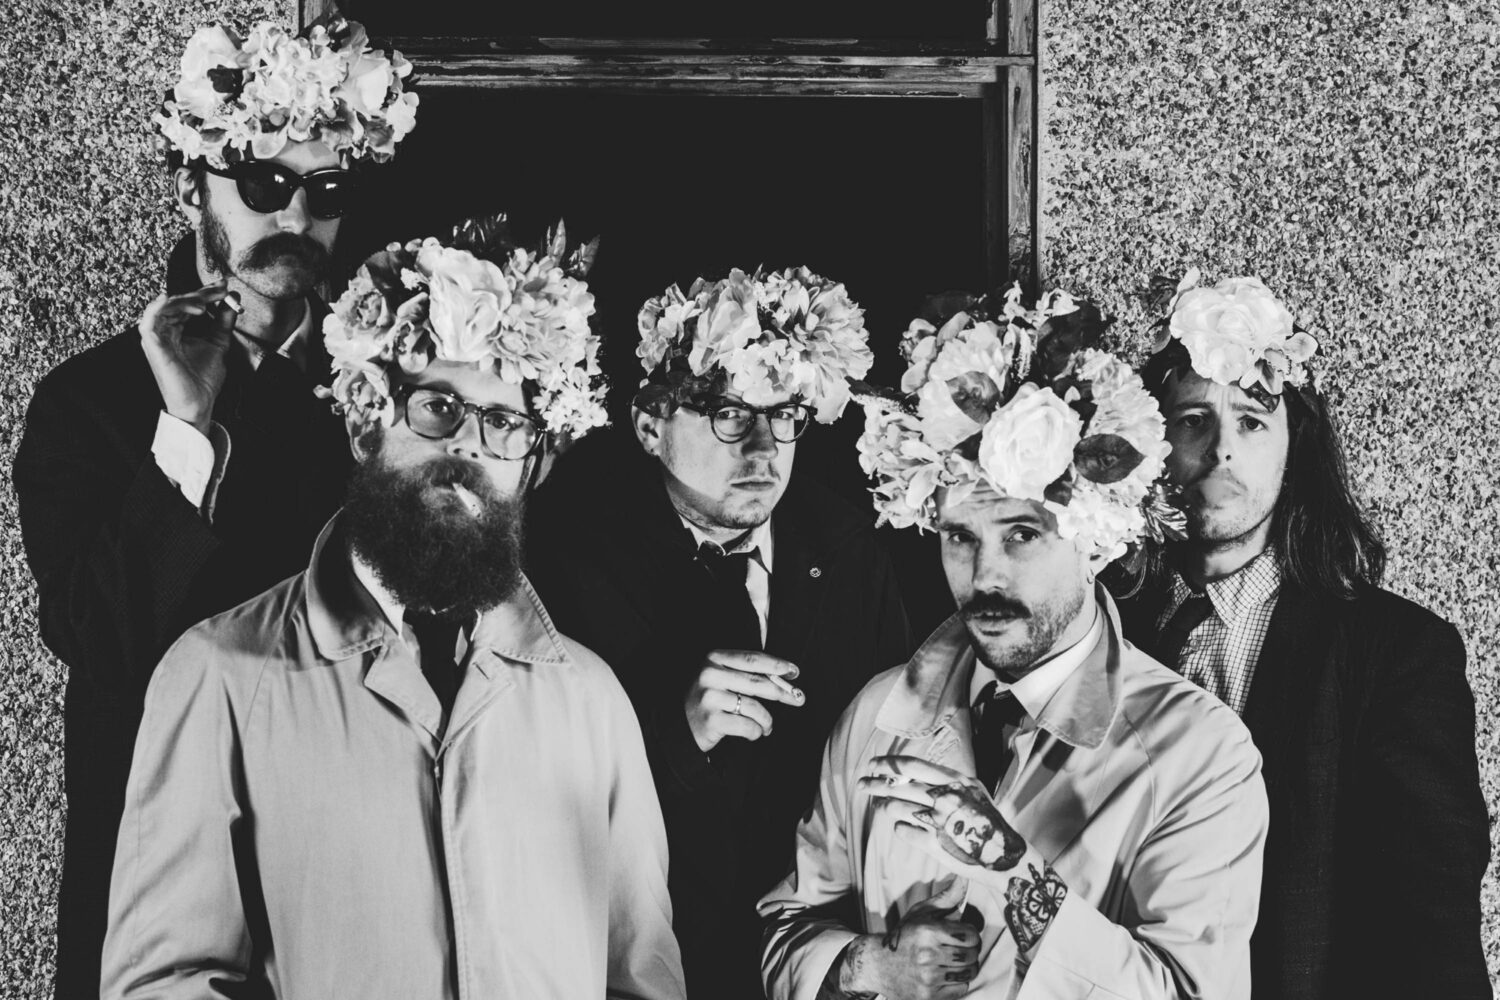 IDLES share blistering rally on toxic masculinity with new song 'Samaritans'